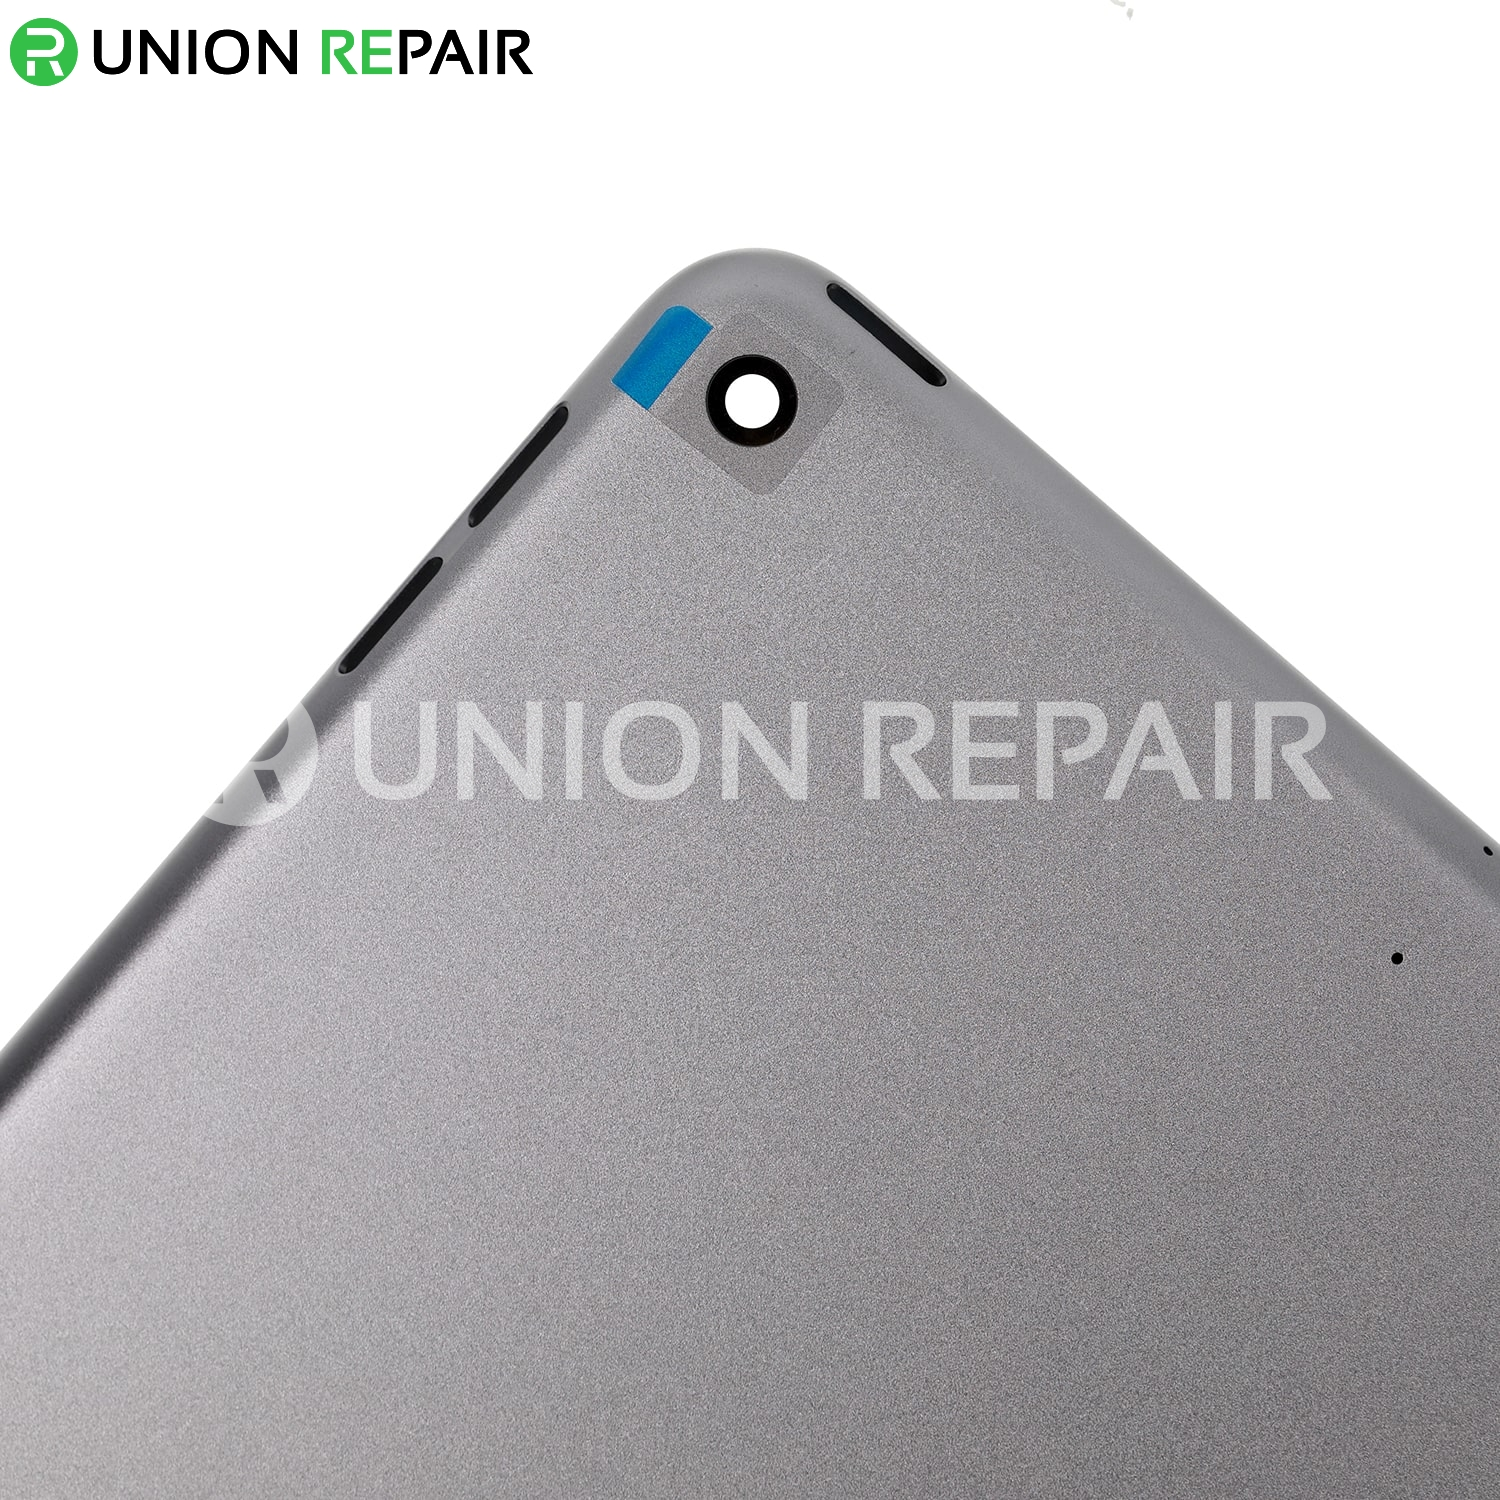 Replacement for iPad Mini 5 WiFi Back Cover - Gray